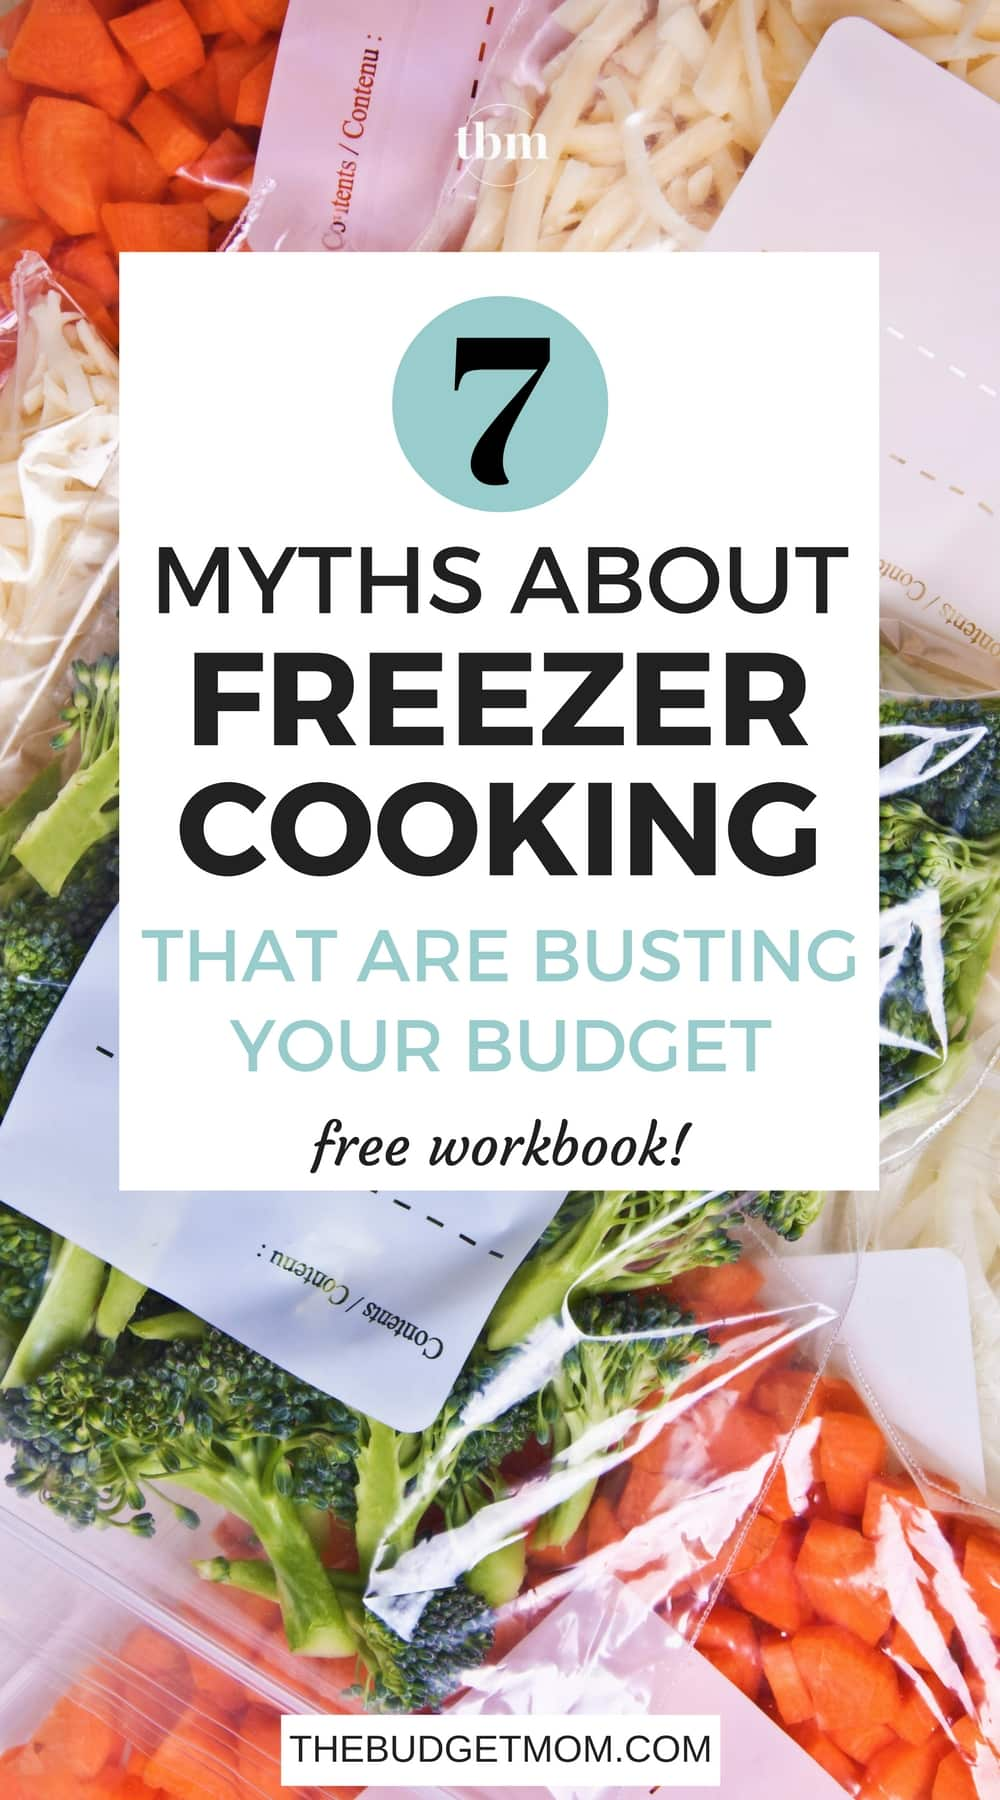 For most of you, freezer meals can seem a bit scary. Before freezing meals became familiar in my home, I was overwhelmed with the thought of preparing a bunch of meals I had no idea on how to make. The truth is, freezer cooking saves you time in the kitchen, lowers your grocery bill, and offers much-needed variety to your dinner menu. Here are seven myths about freezer cooking that might be holding you back and why these myths might be making you spend more money than you need to.